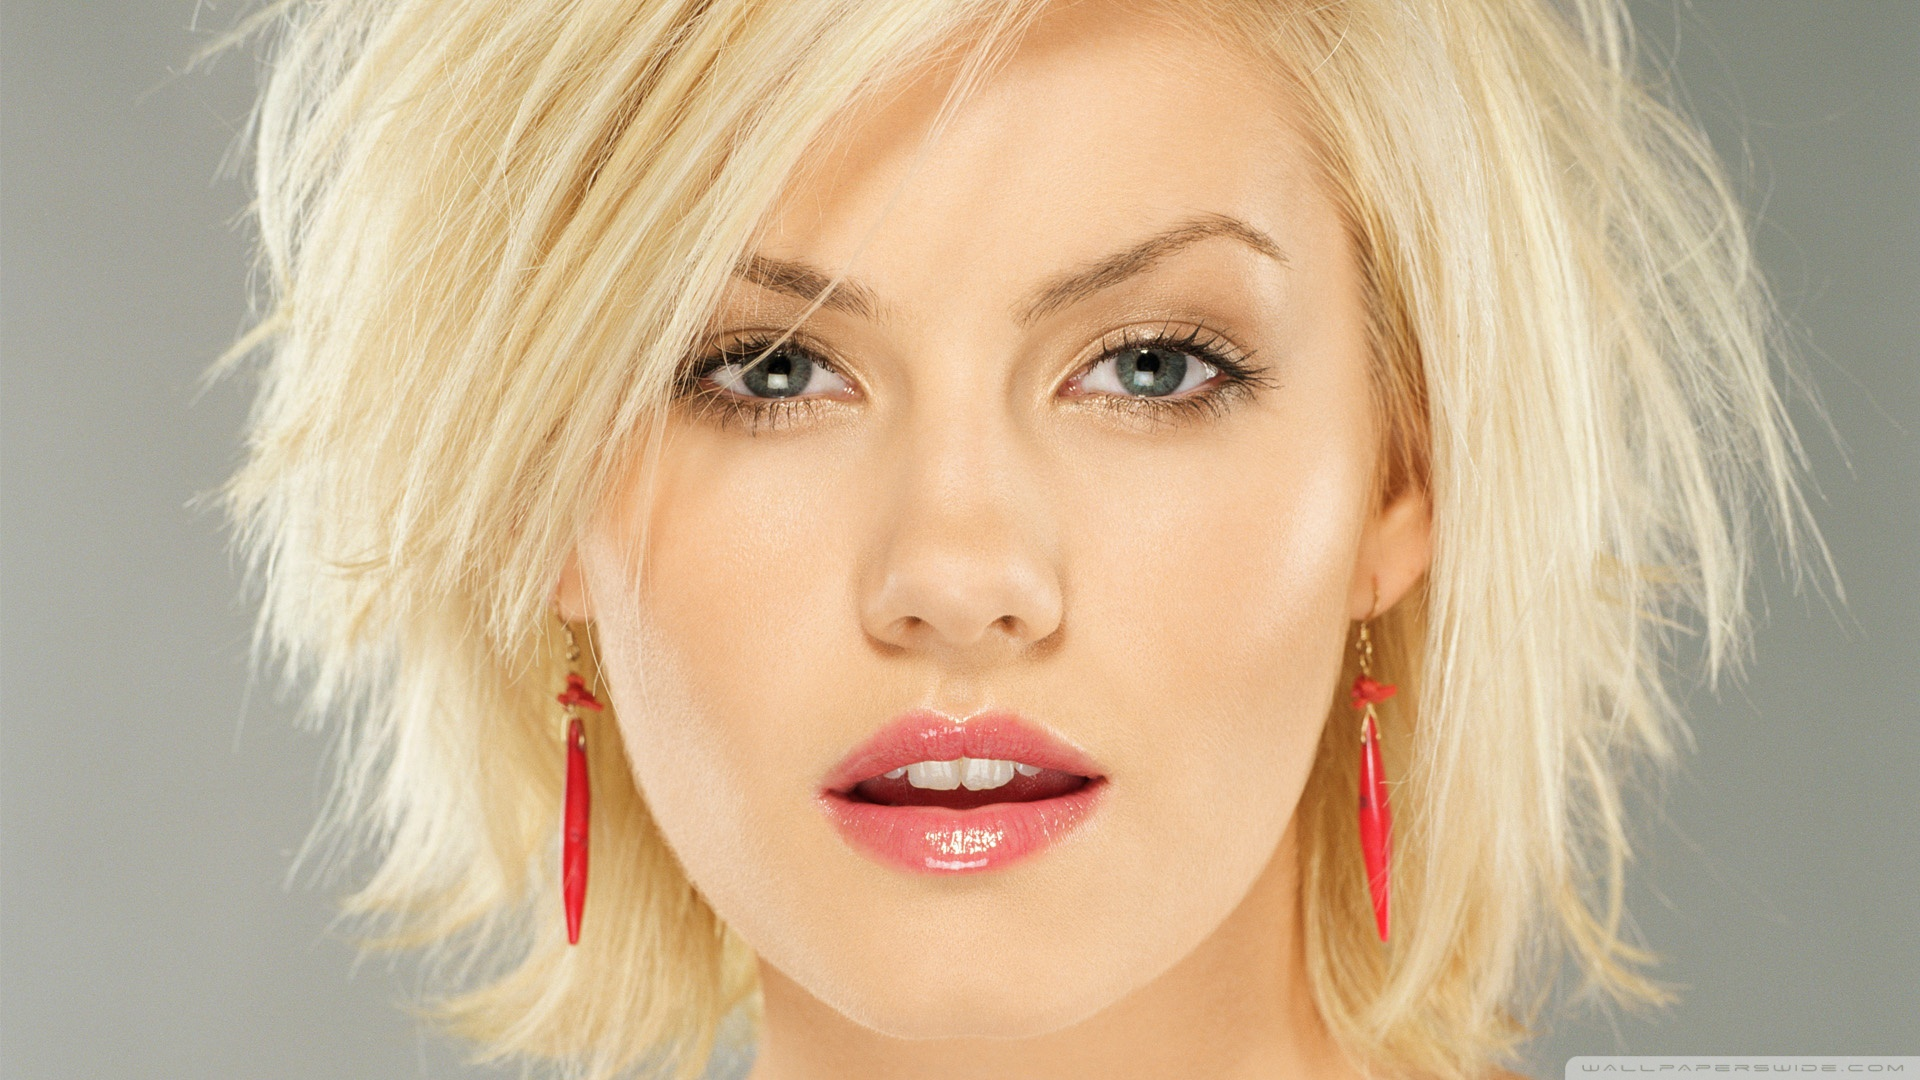 Elisha Cuthbert wallpaper for desktop